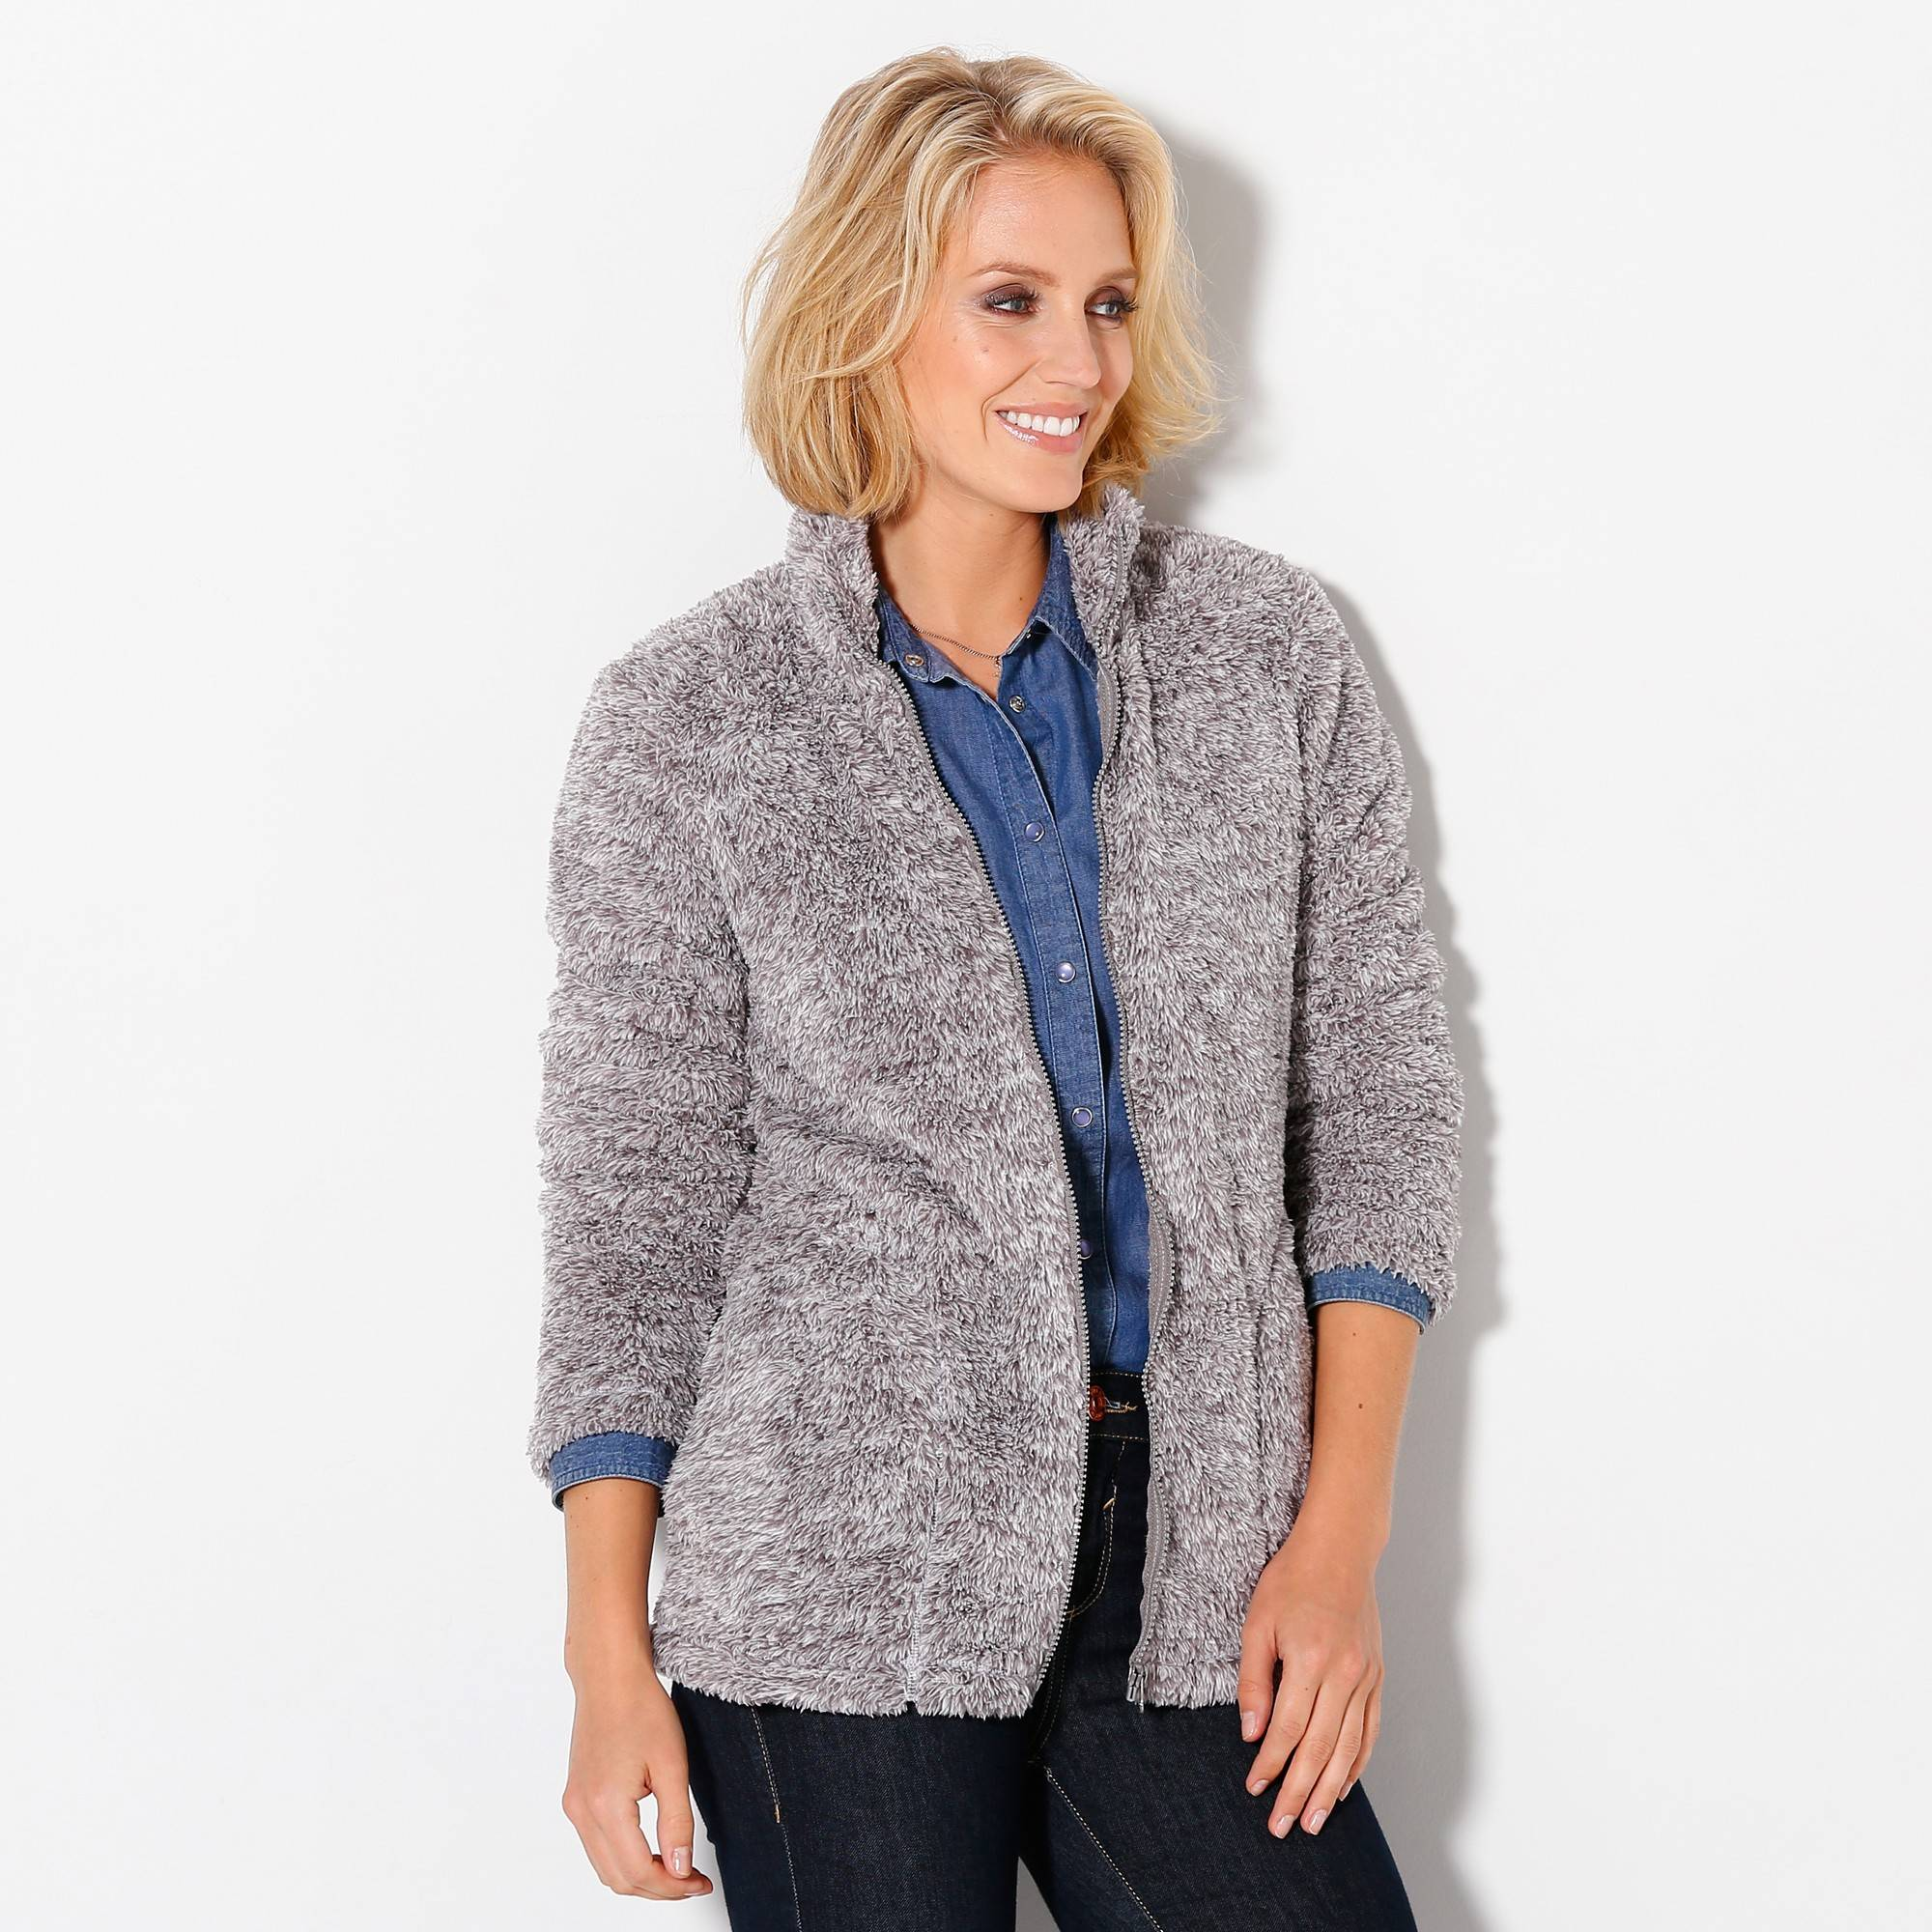 Casual Collection Veste maille peluche - Gris - Taille : 38,40 - Blancheporte